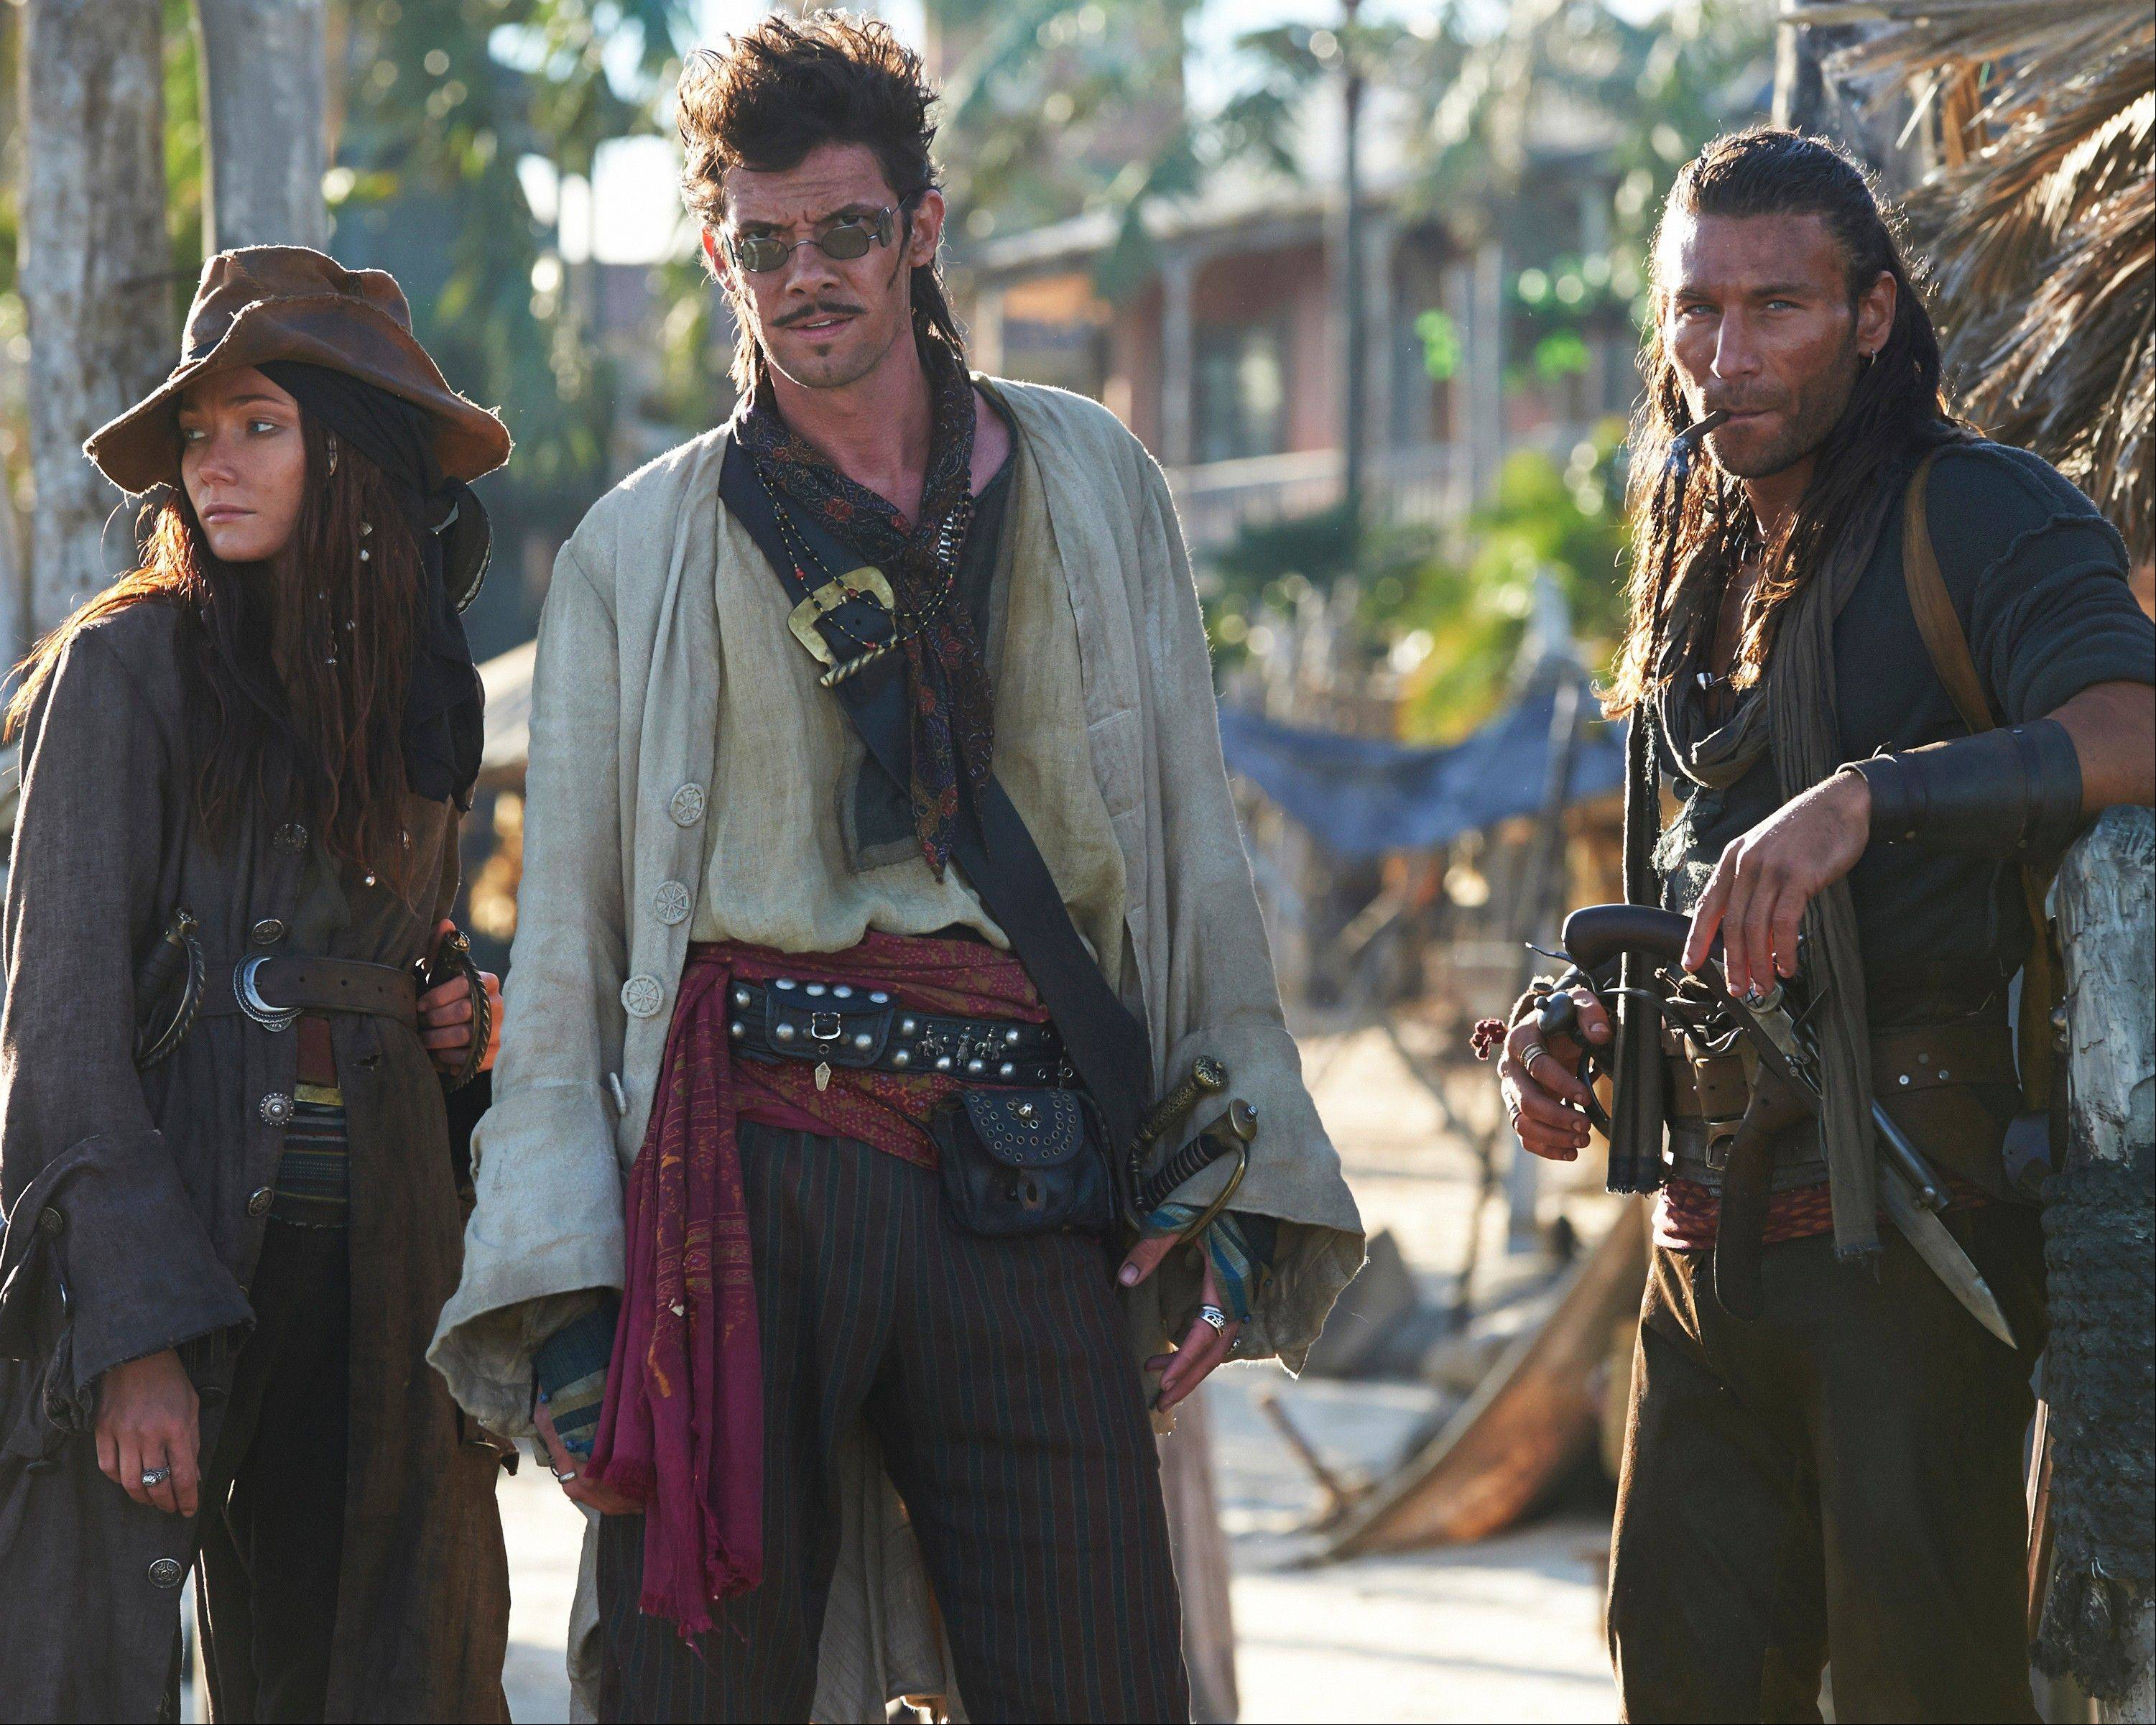 �Black Sails,� starring Clara Paget, left, as Anne Bonny, Zach McGowan as Captain Charles Vane and Toby Schmidt as Jack Rackham, isn�t scheduled to dock until next year, but Starz is screening the first episode of the mature pirate drama near the San Diego Convention Center during Comic-Con.